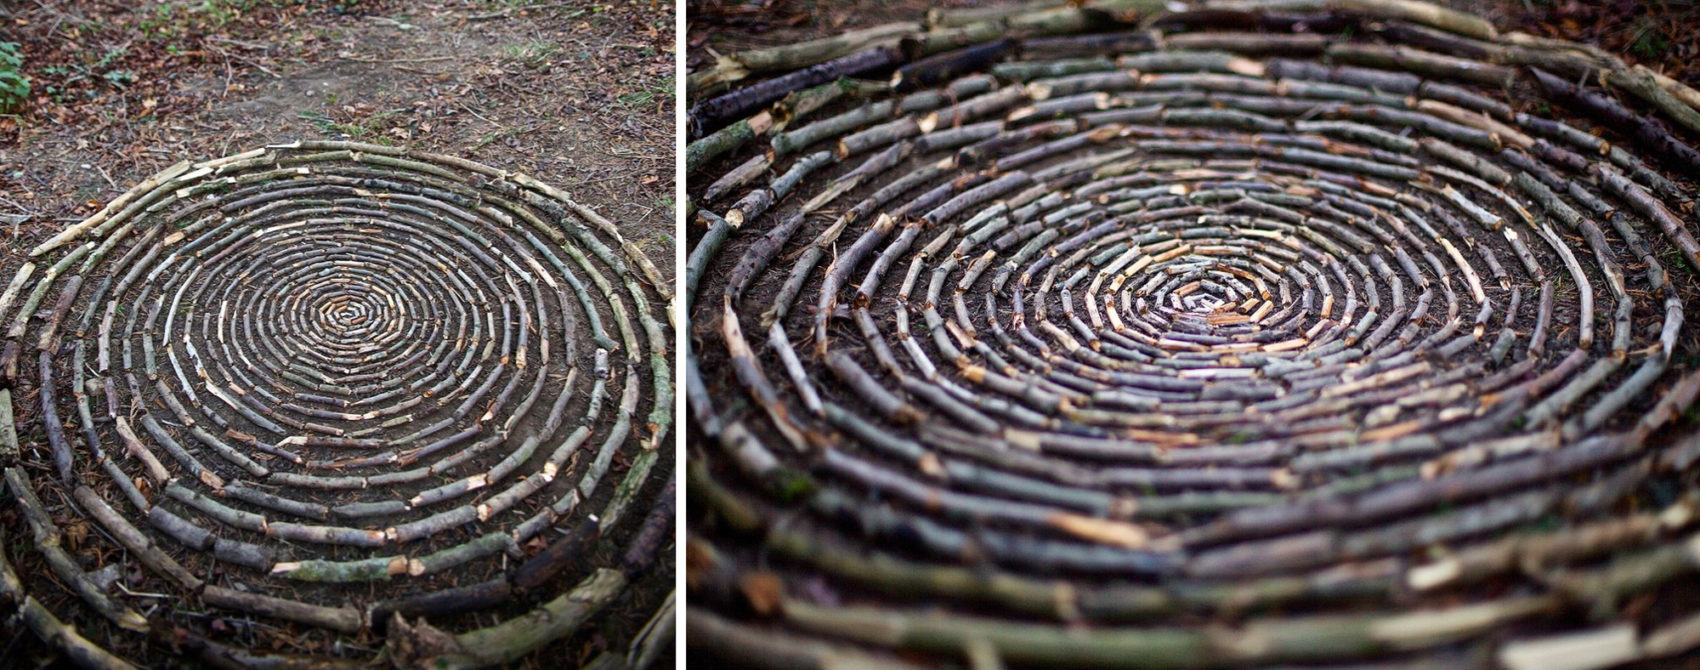 James Brunt creates elaborate ephemeral artworks 2 James Brunt Organizes Leaves and Rocks Into Elaborate Cairns and Mandalas